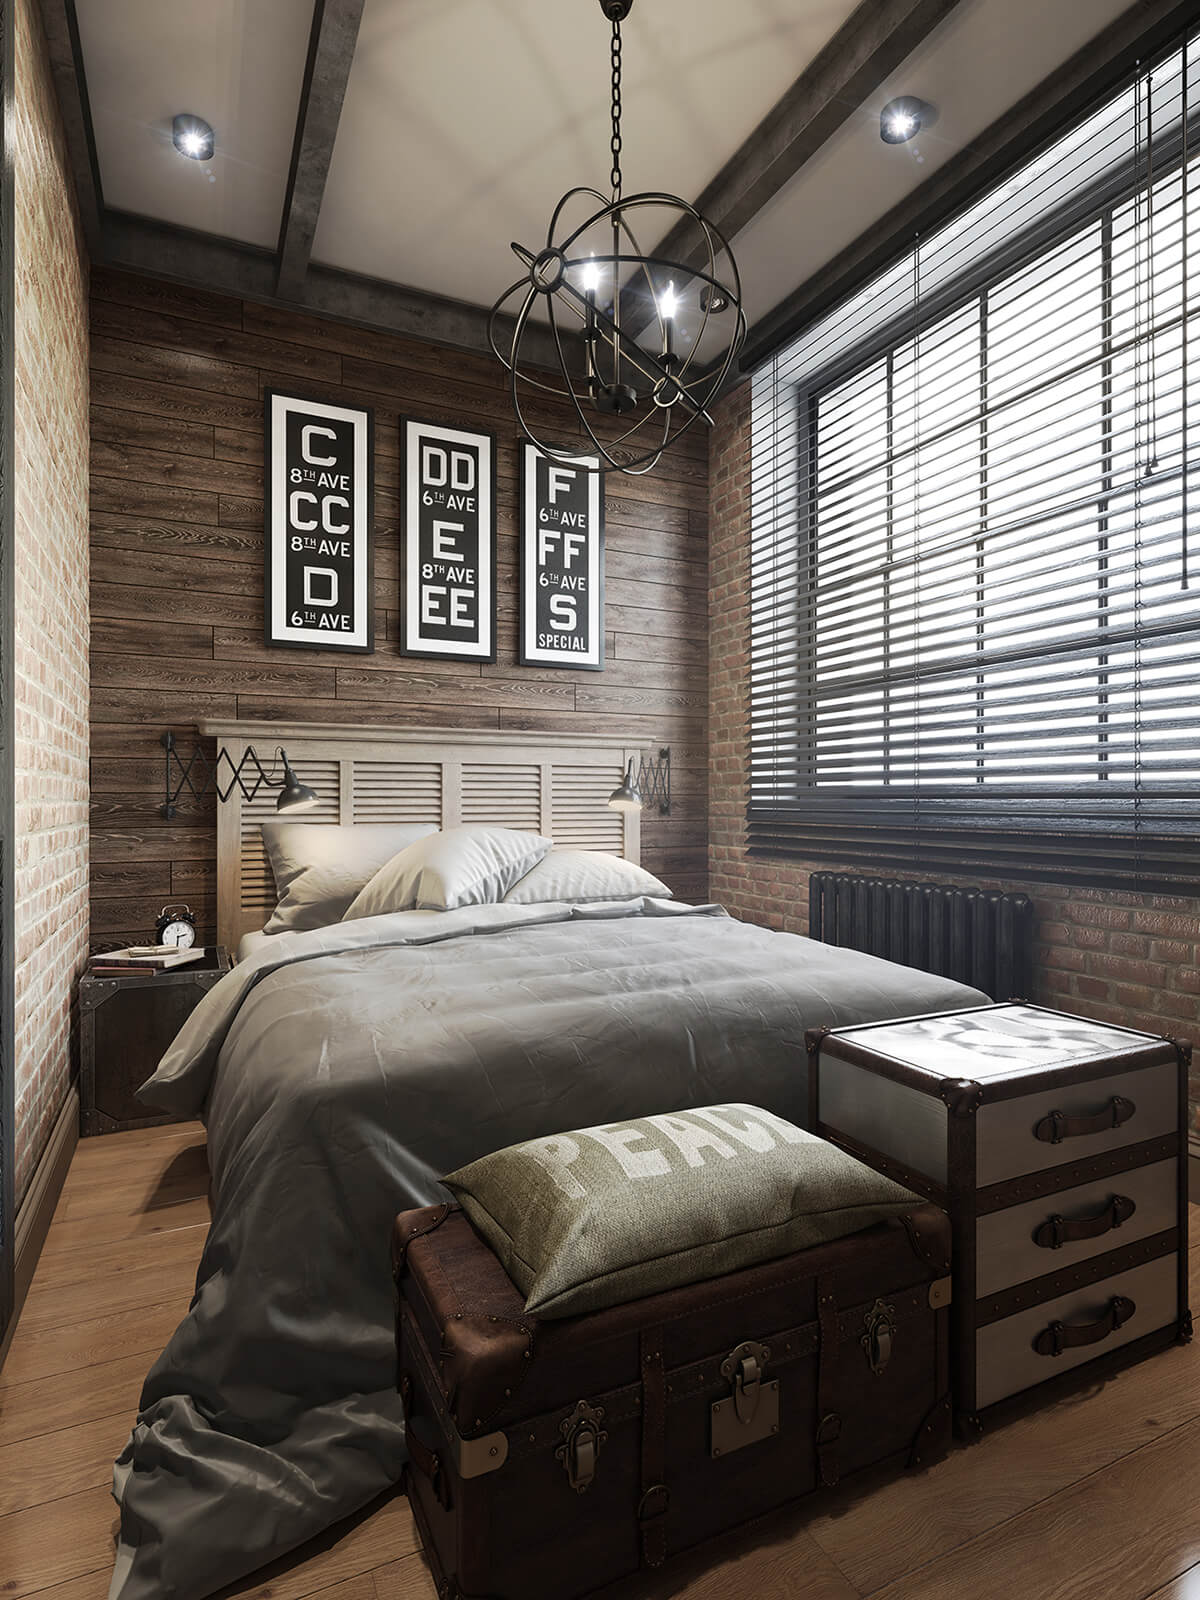 37 Best Small Bedroom Ideas and Designs for 2020 on Small Room Ideas  id=98381